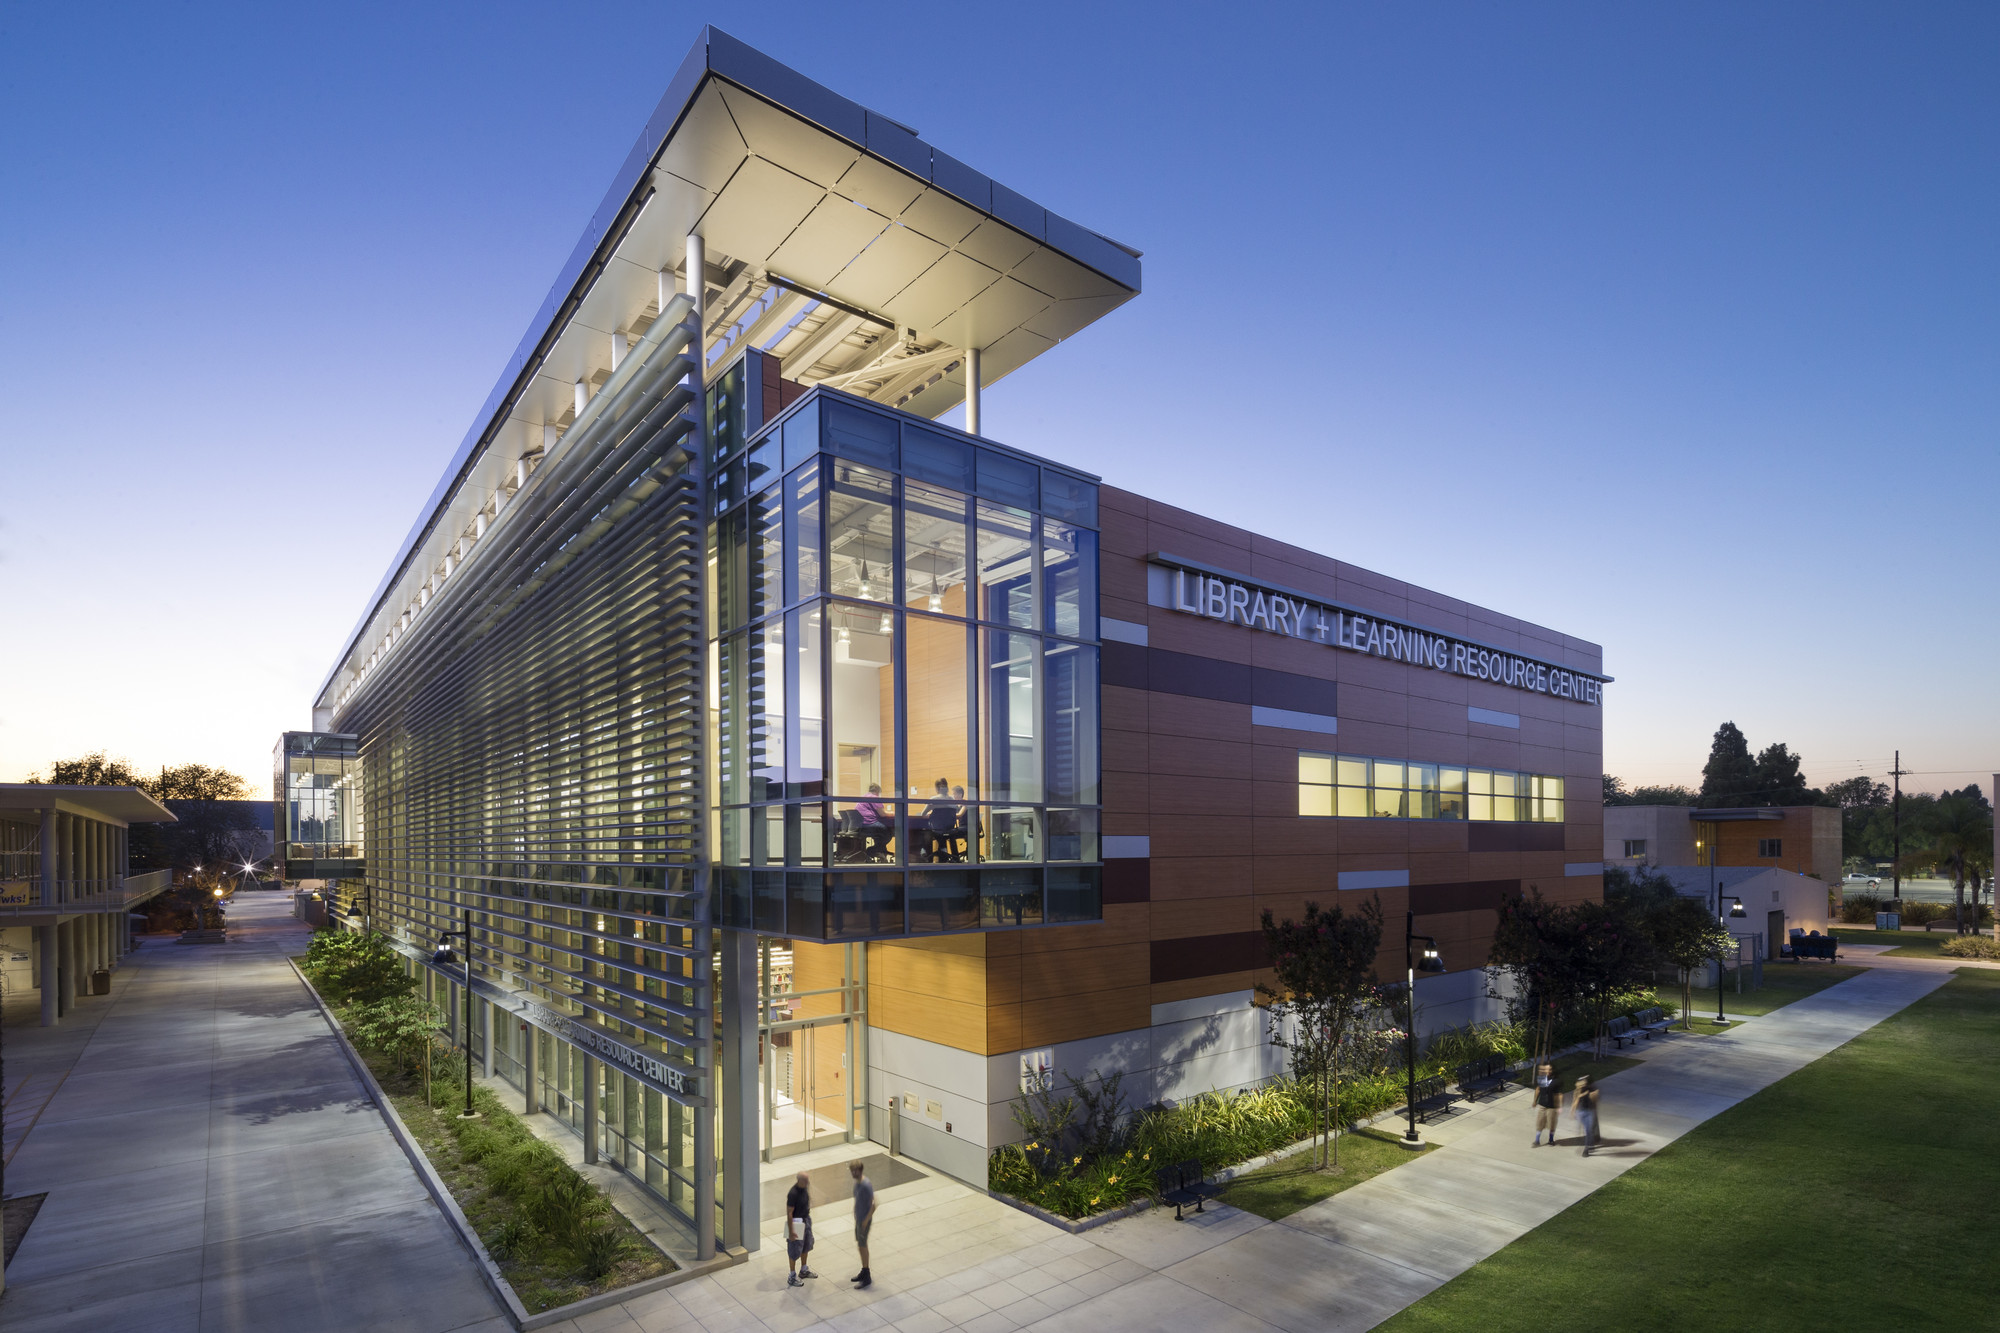 Gallery of 2015 los angeles architectural awards honor for Architecture colleges